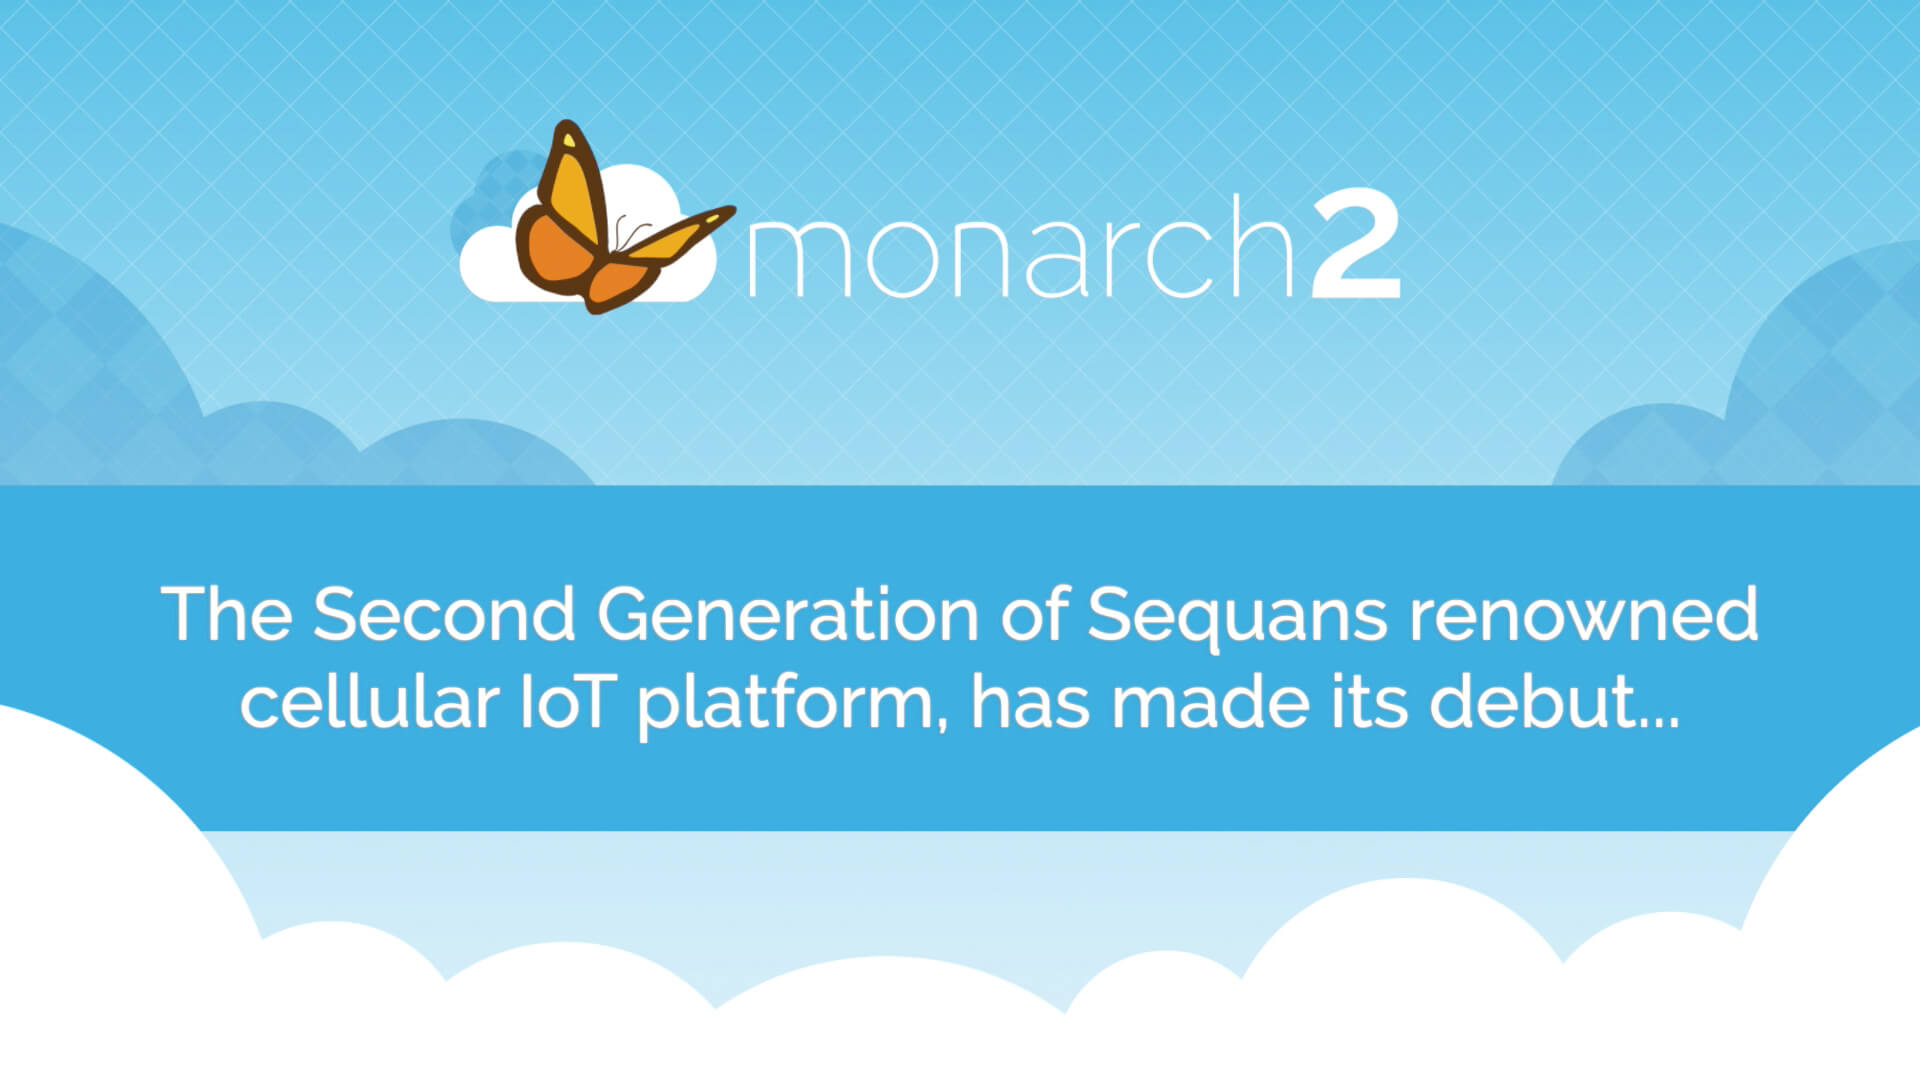 The Second Generation of Sequans Renowned Cellular IoT Platform